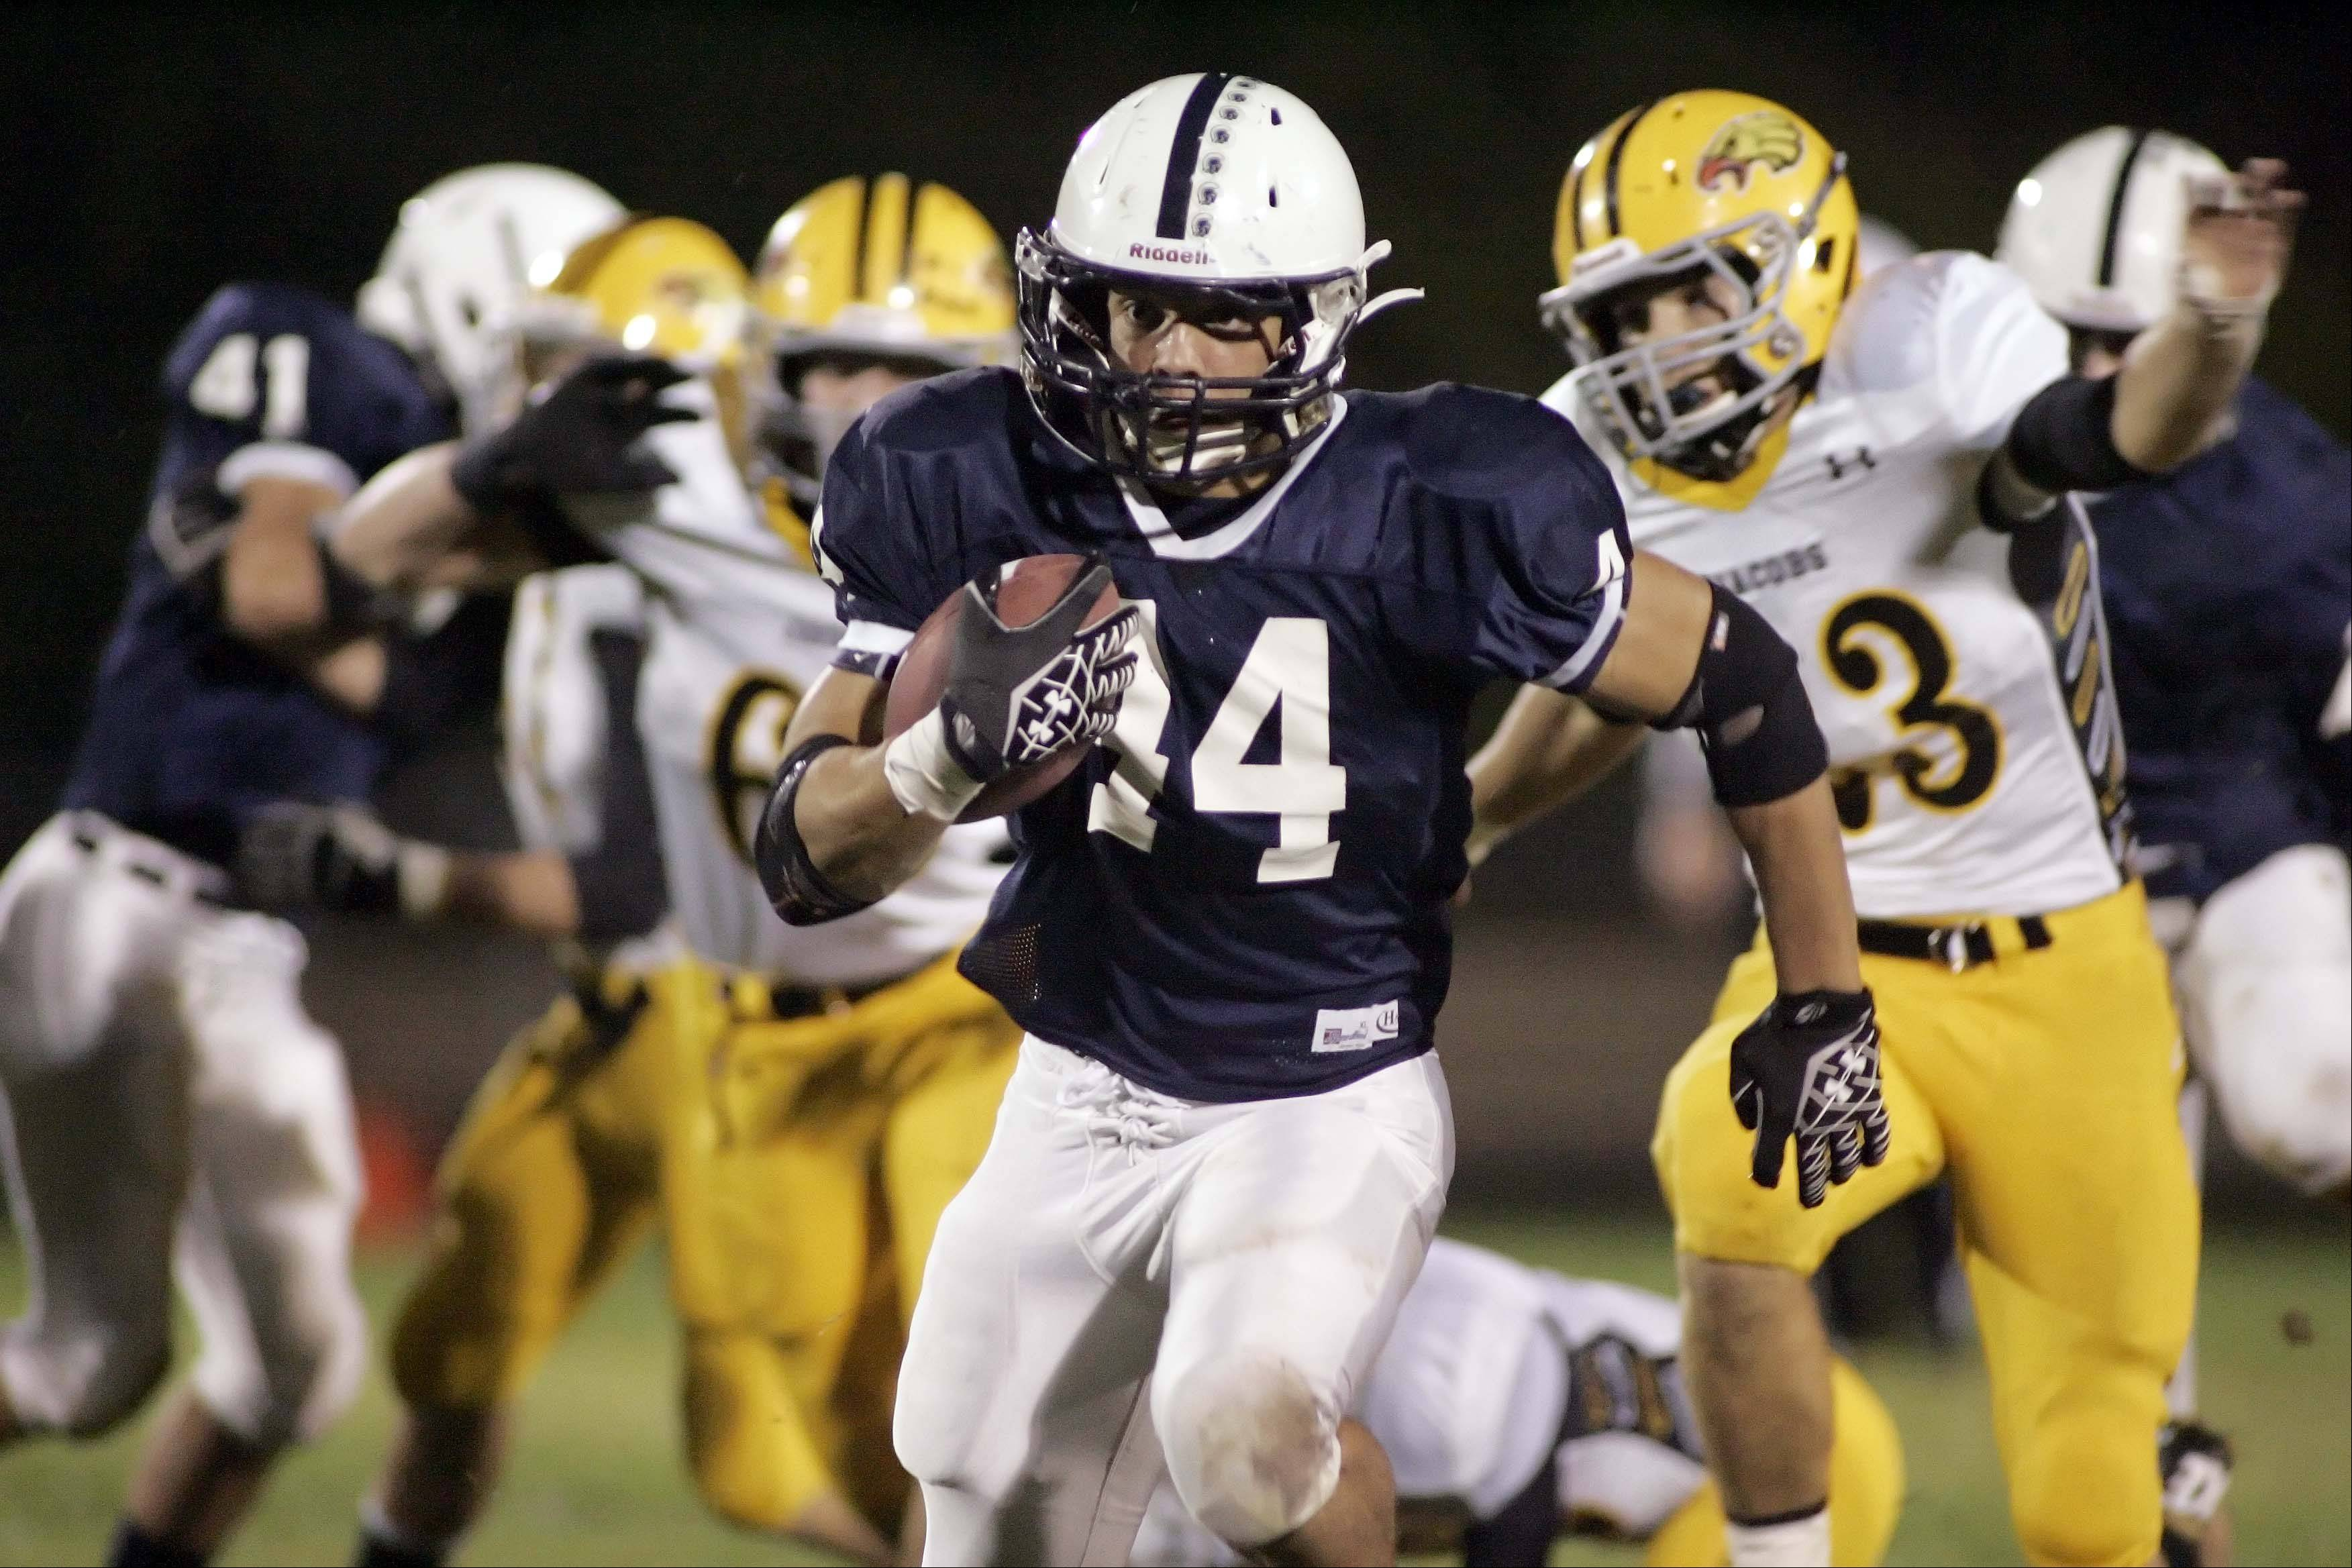 Cary-Grove's Kyle Norberg runs for a touchdown during the first quarter.